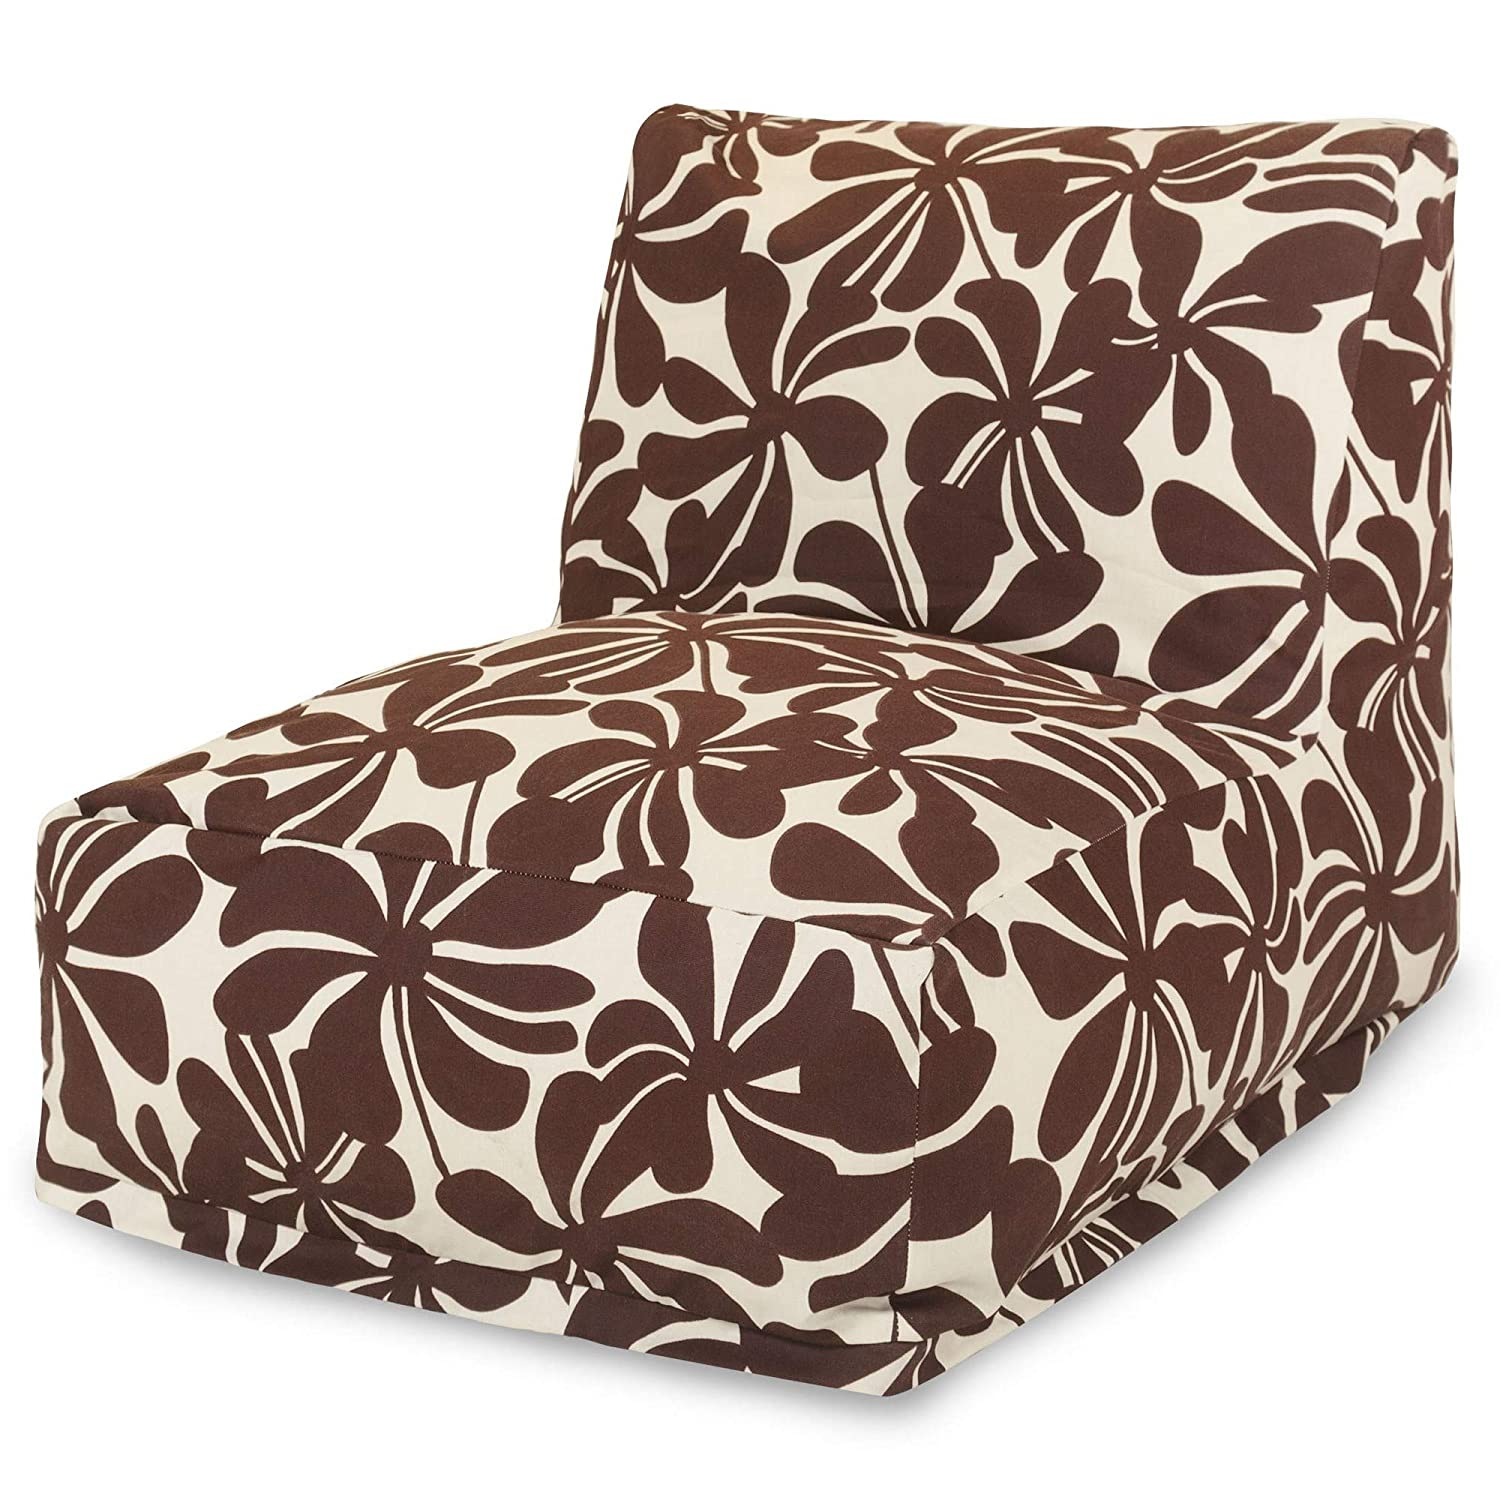 Majestic Home Goods Red Plantation Bean Bag Chair Lounger